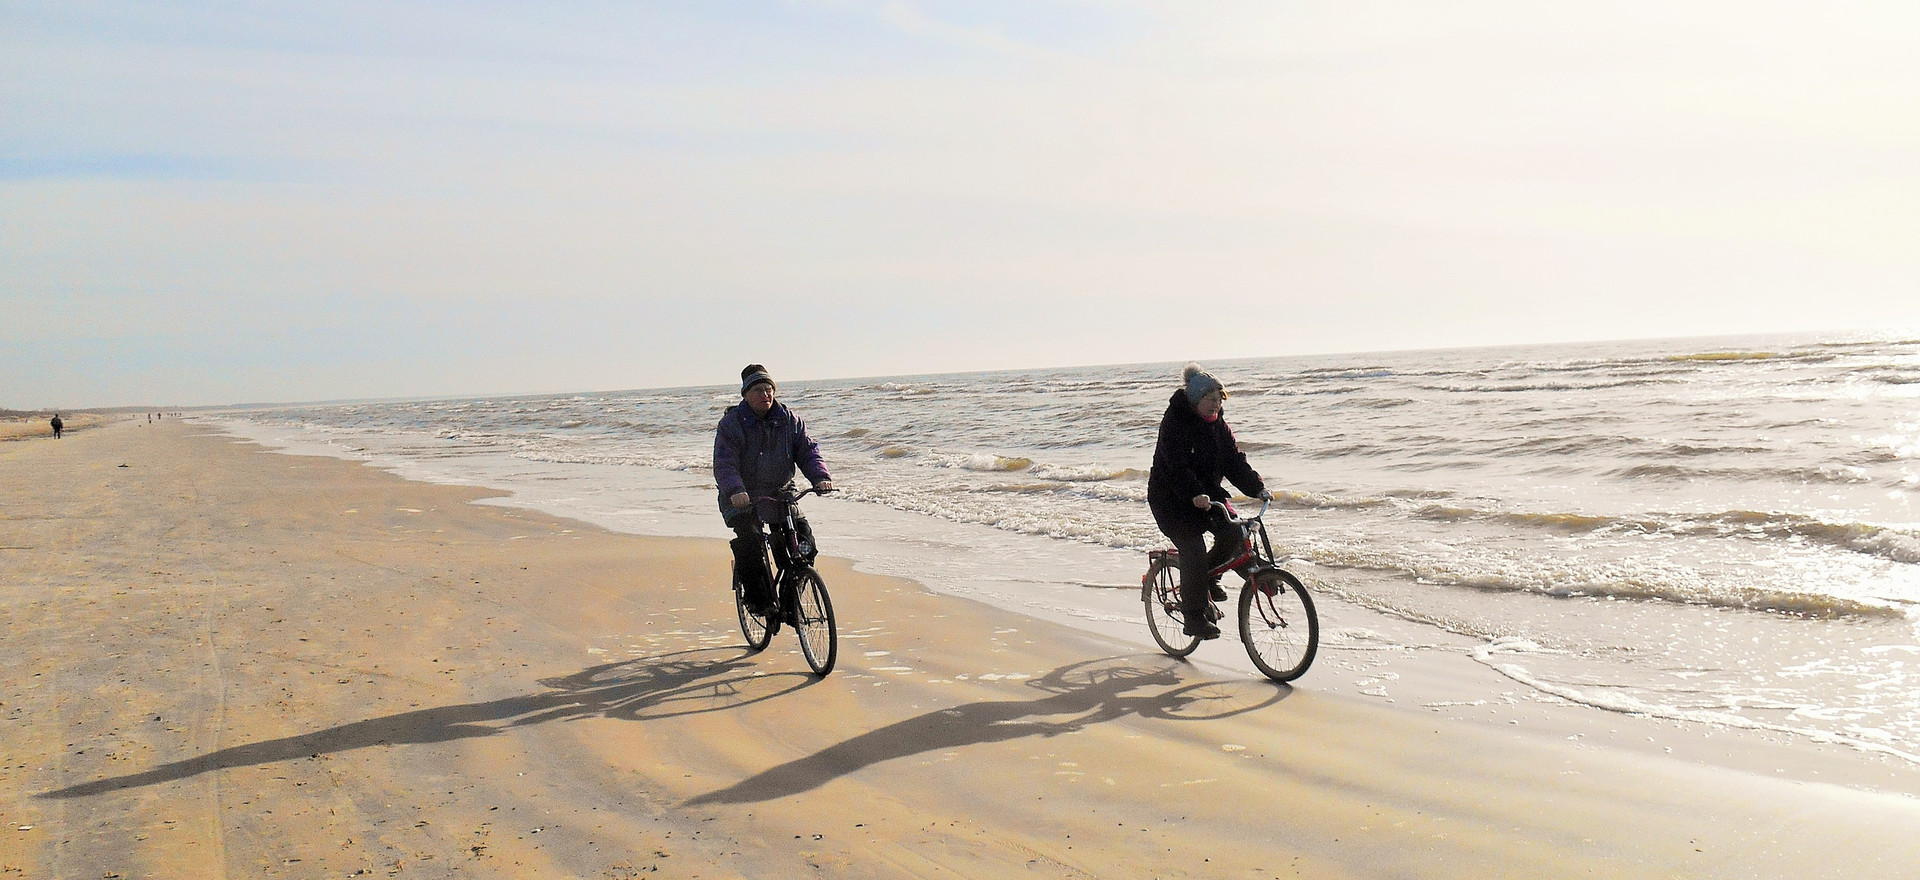 Two on bicycles singing the sea song, Liepaja, March 2017